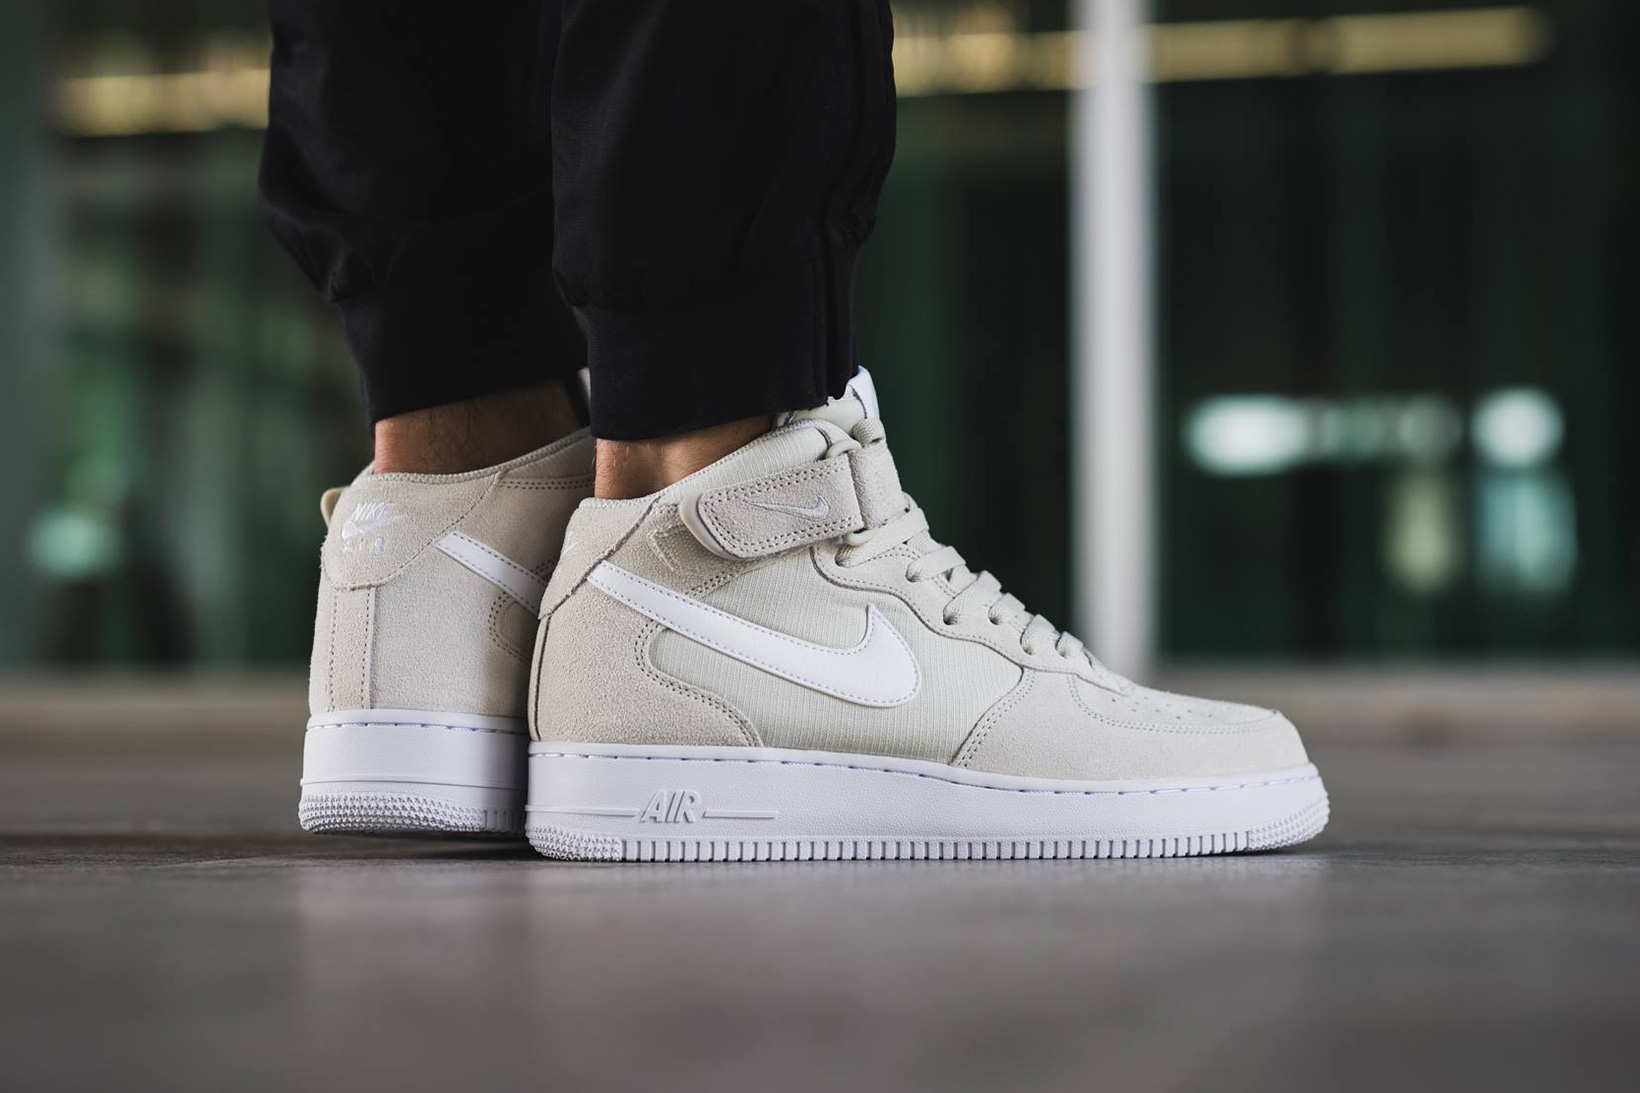 """The Nike Air Force 1 Mid Gets a Clean """"Light Bone"""" Colorway"""